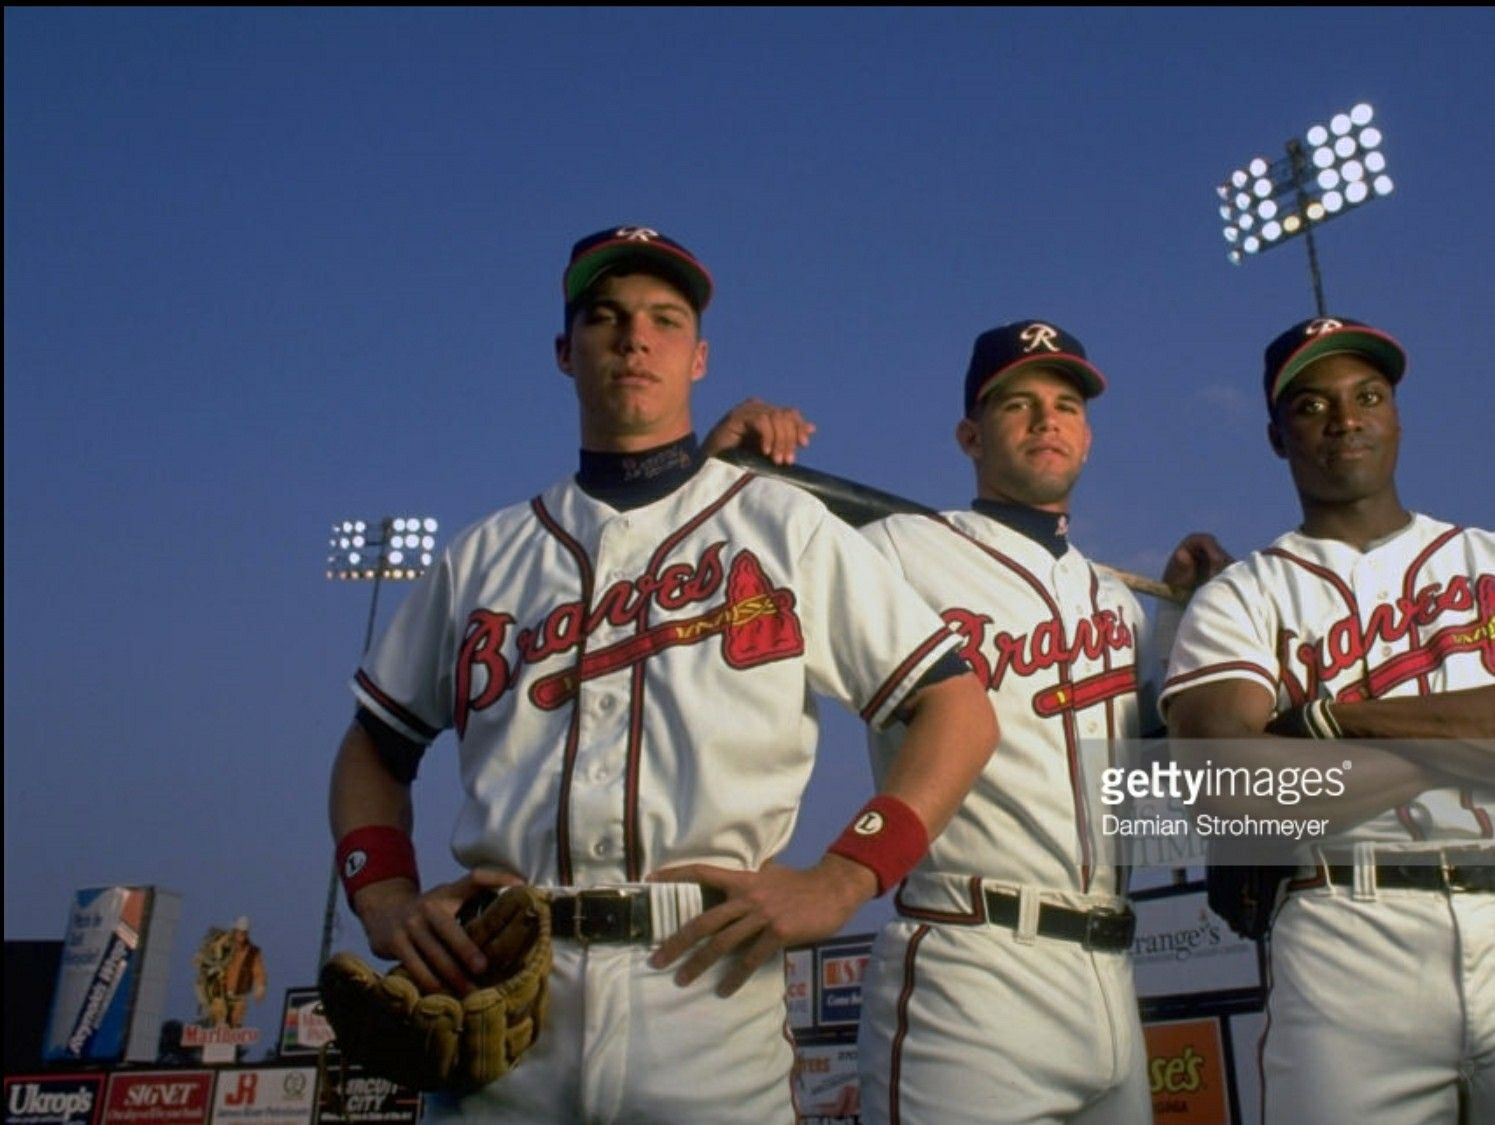 Chipper Jones Javy Lopez And Mike Kelly With The Richmond Braves Chipper Jones Braves Sports Jersey